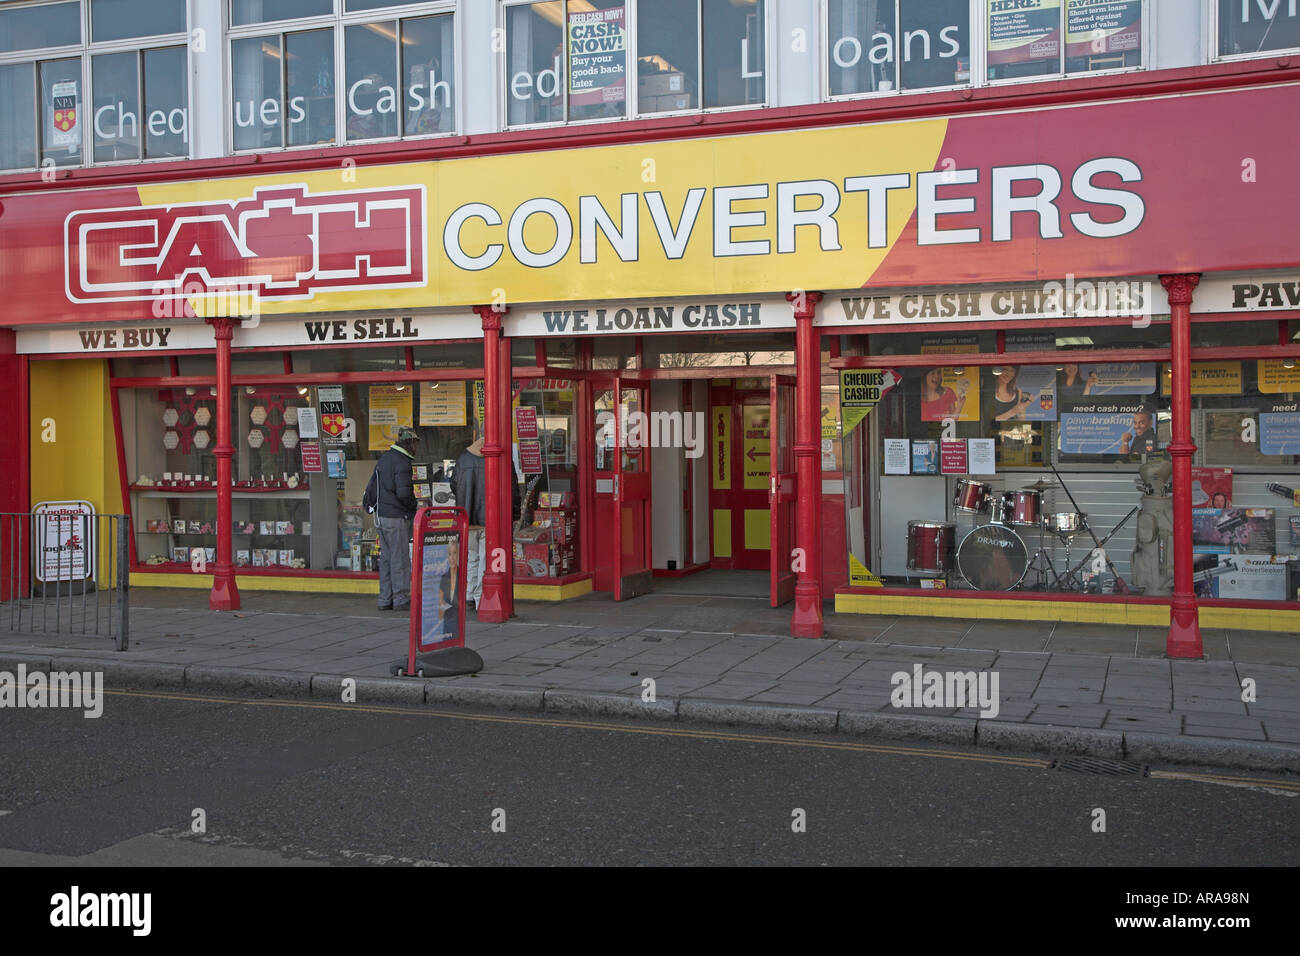 Payday loans poverty image 6